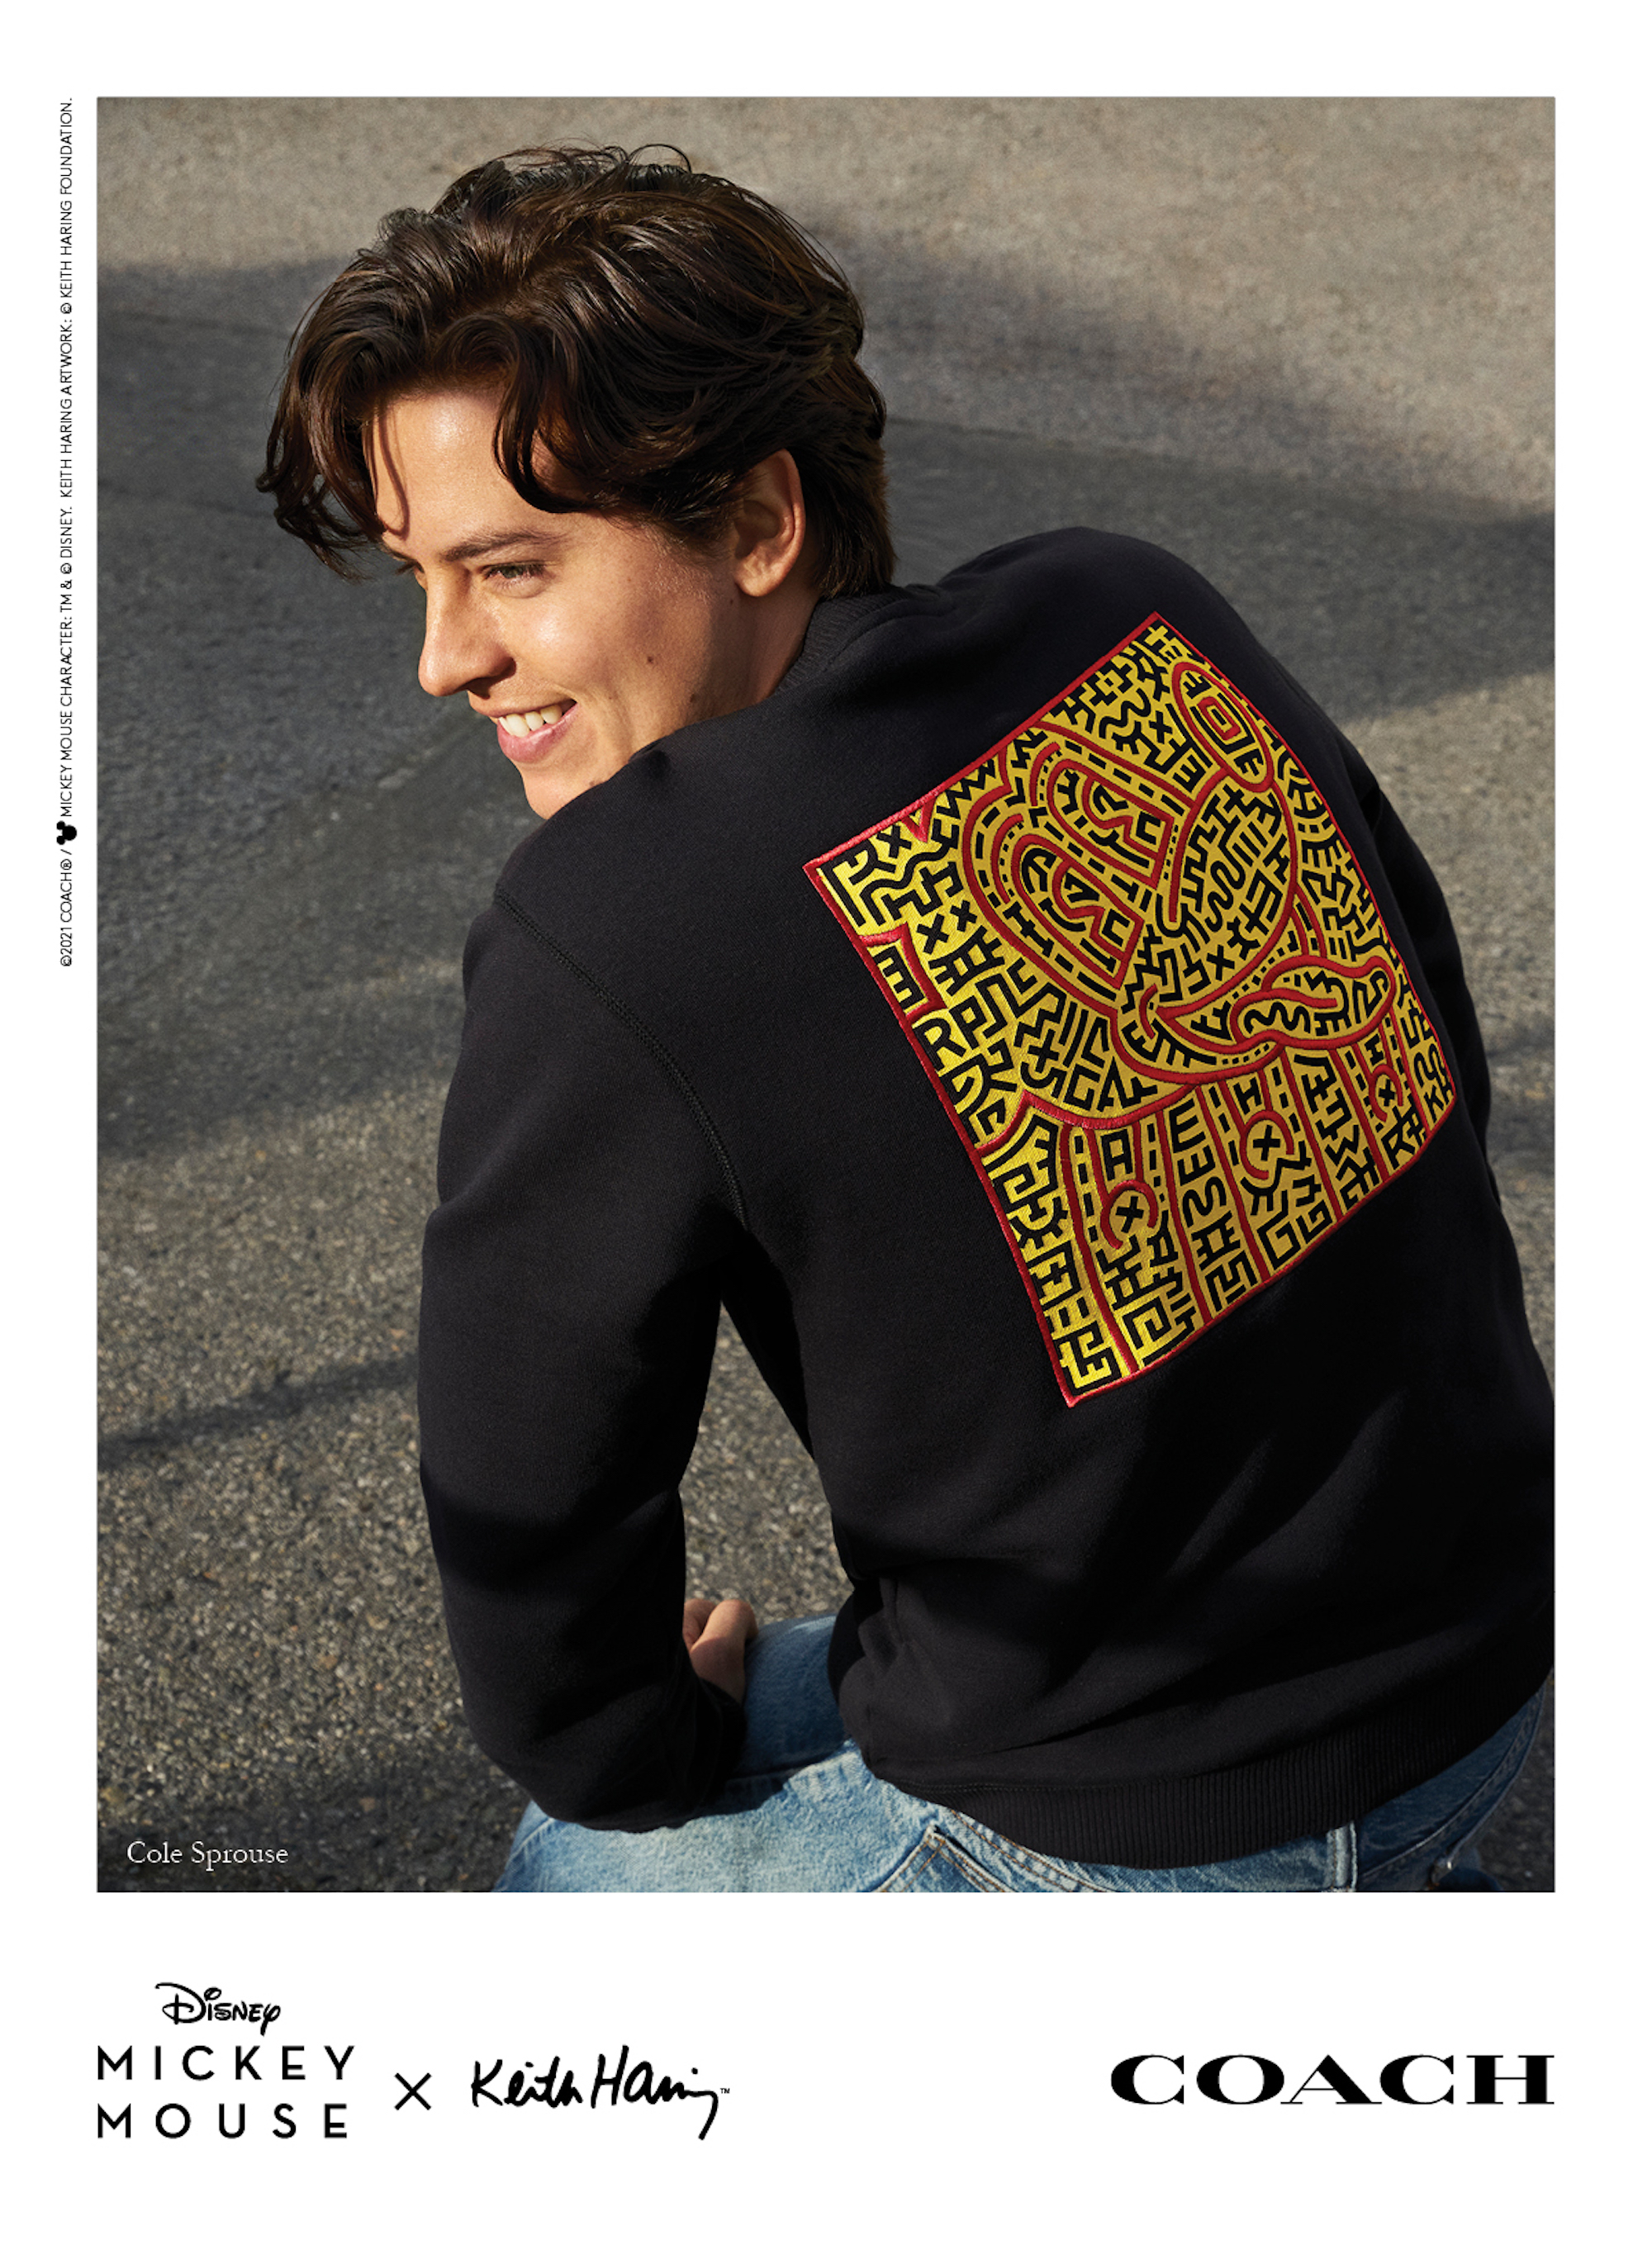 Mickey x Keith Haring for Coach Cole Sprouse